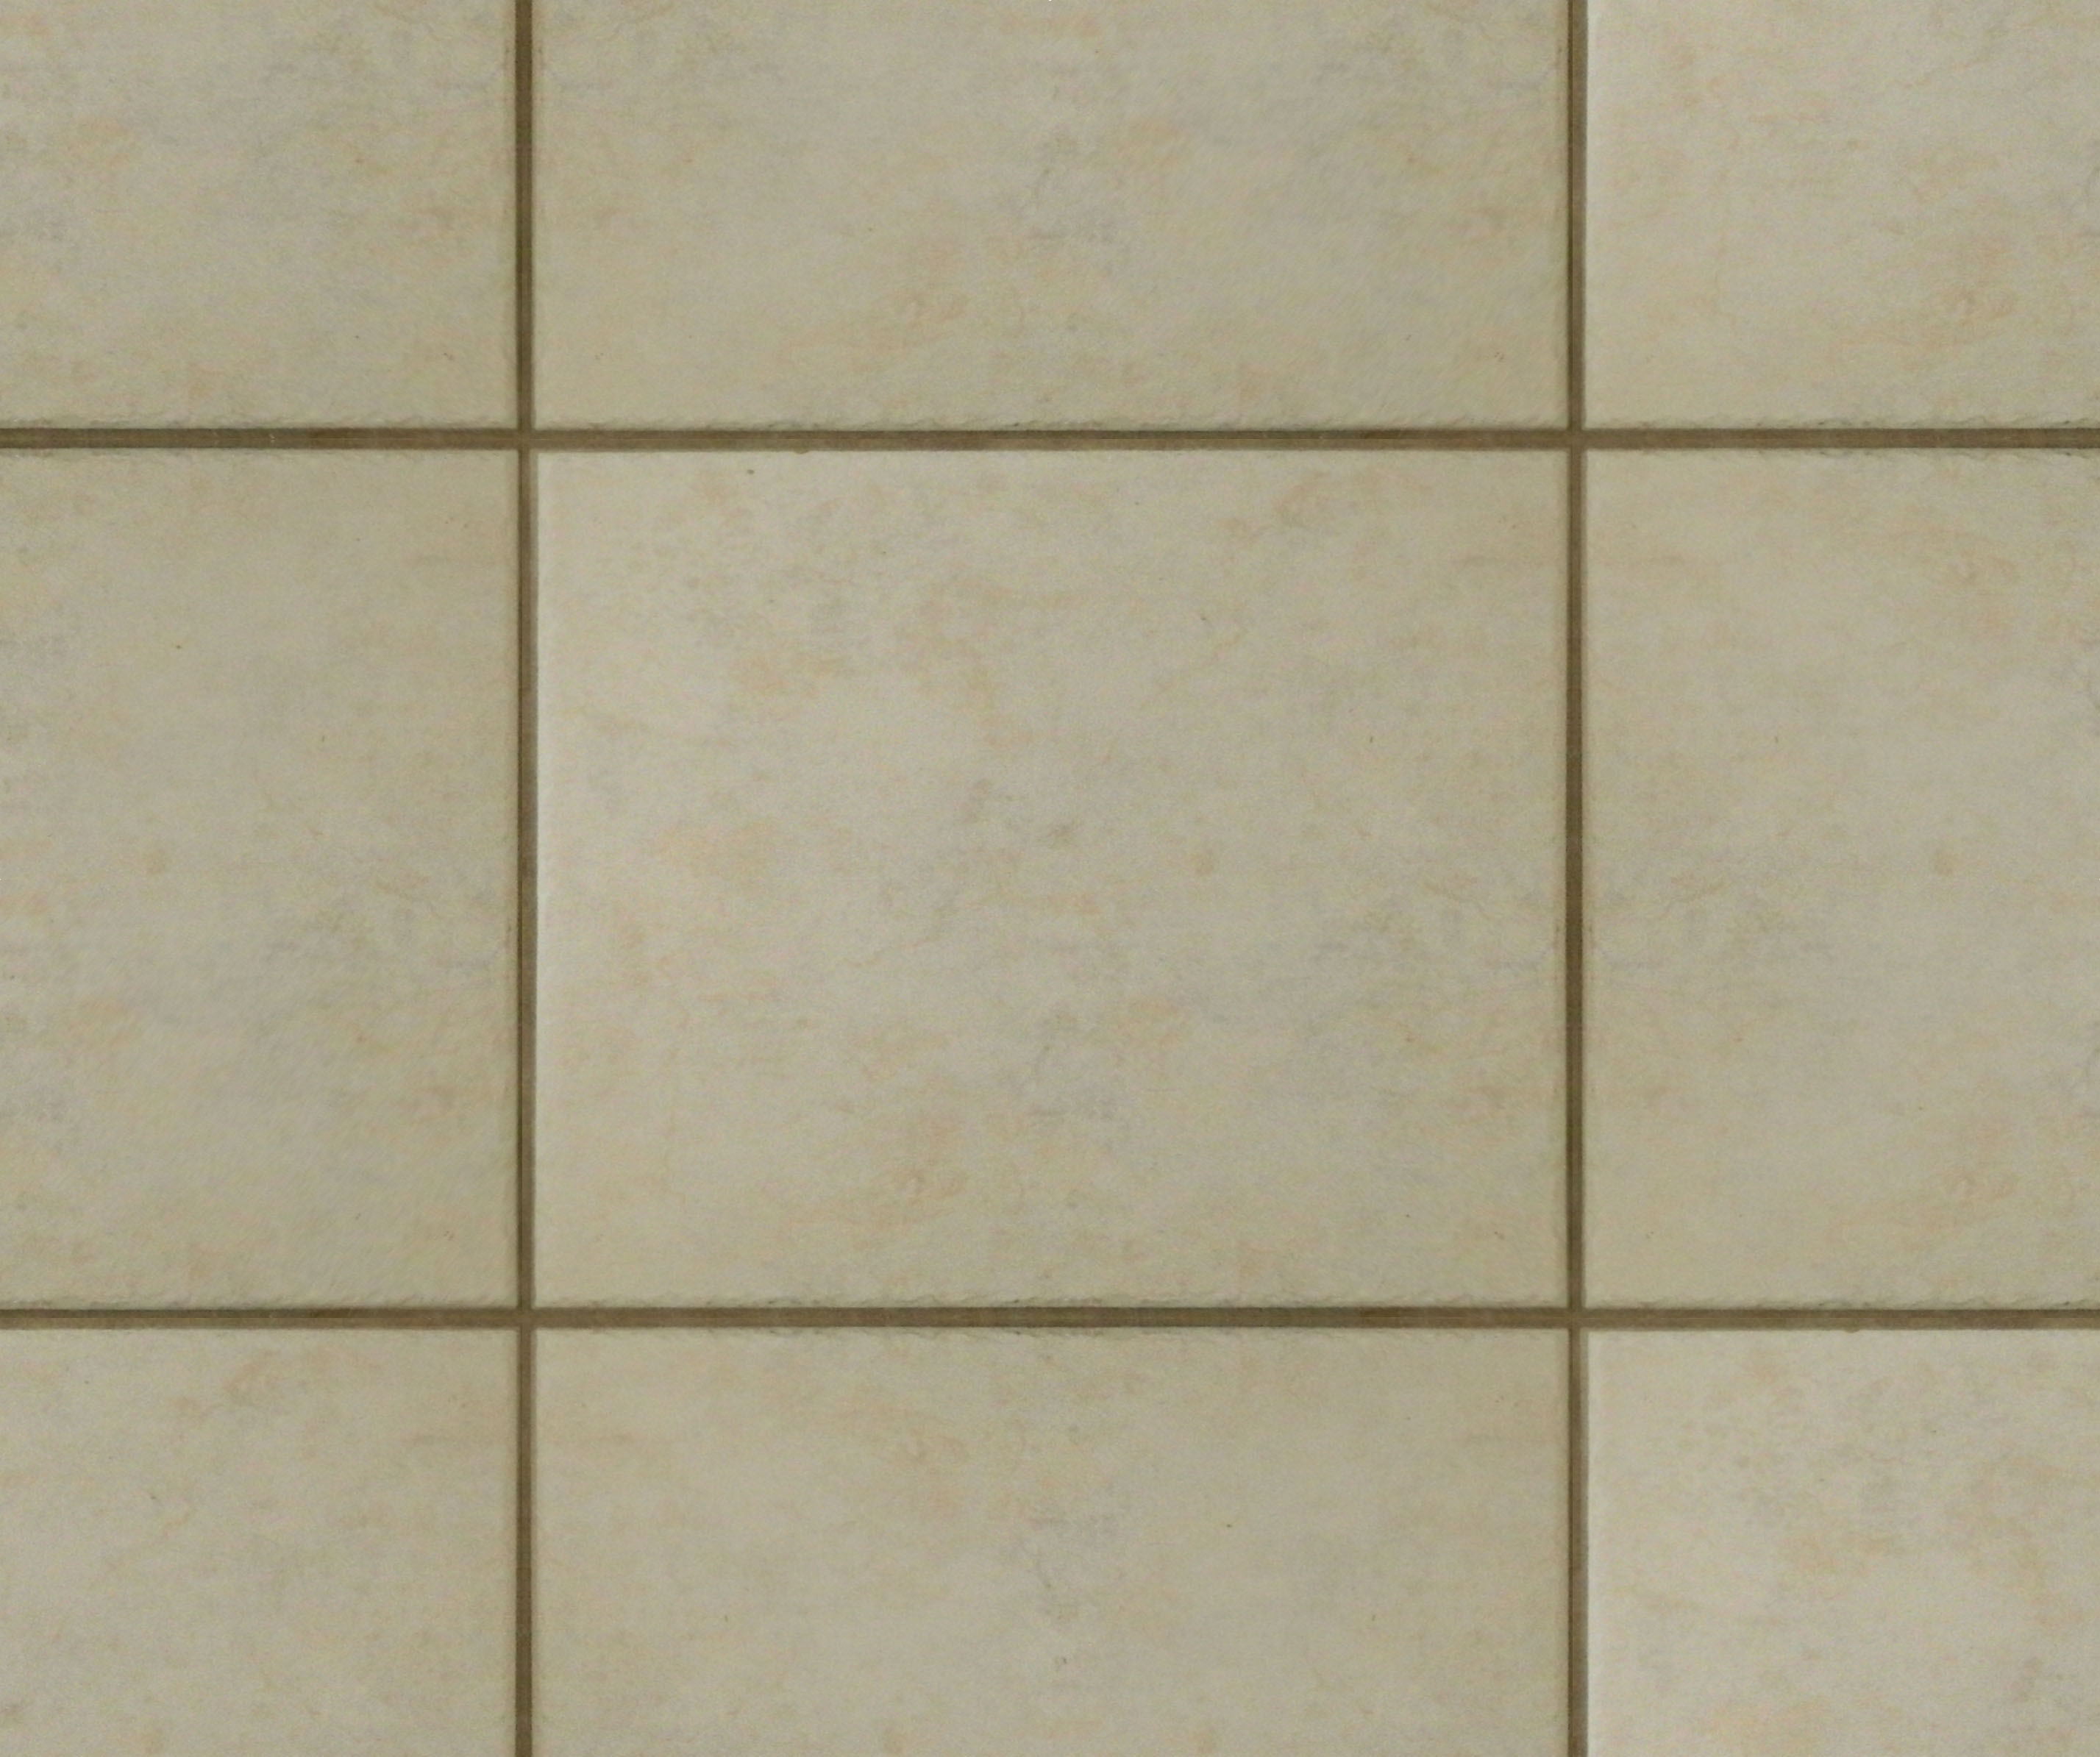 Clean repeatable tile opengameart preview a simple clean tile floor texture repeats wonderfully wihthout distortion dailygadgetfo Gallery